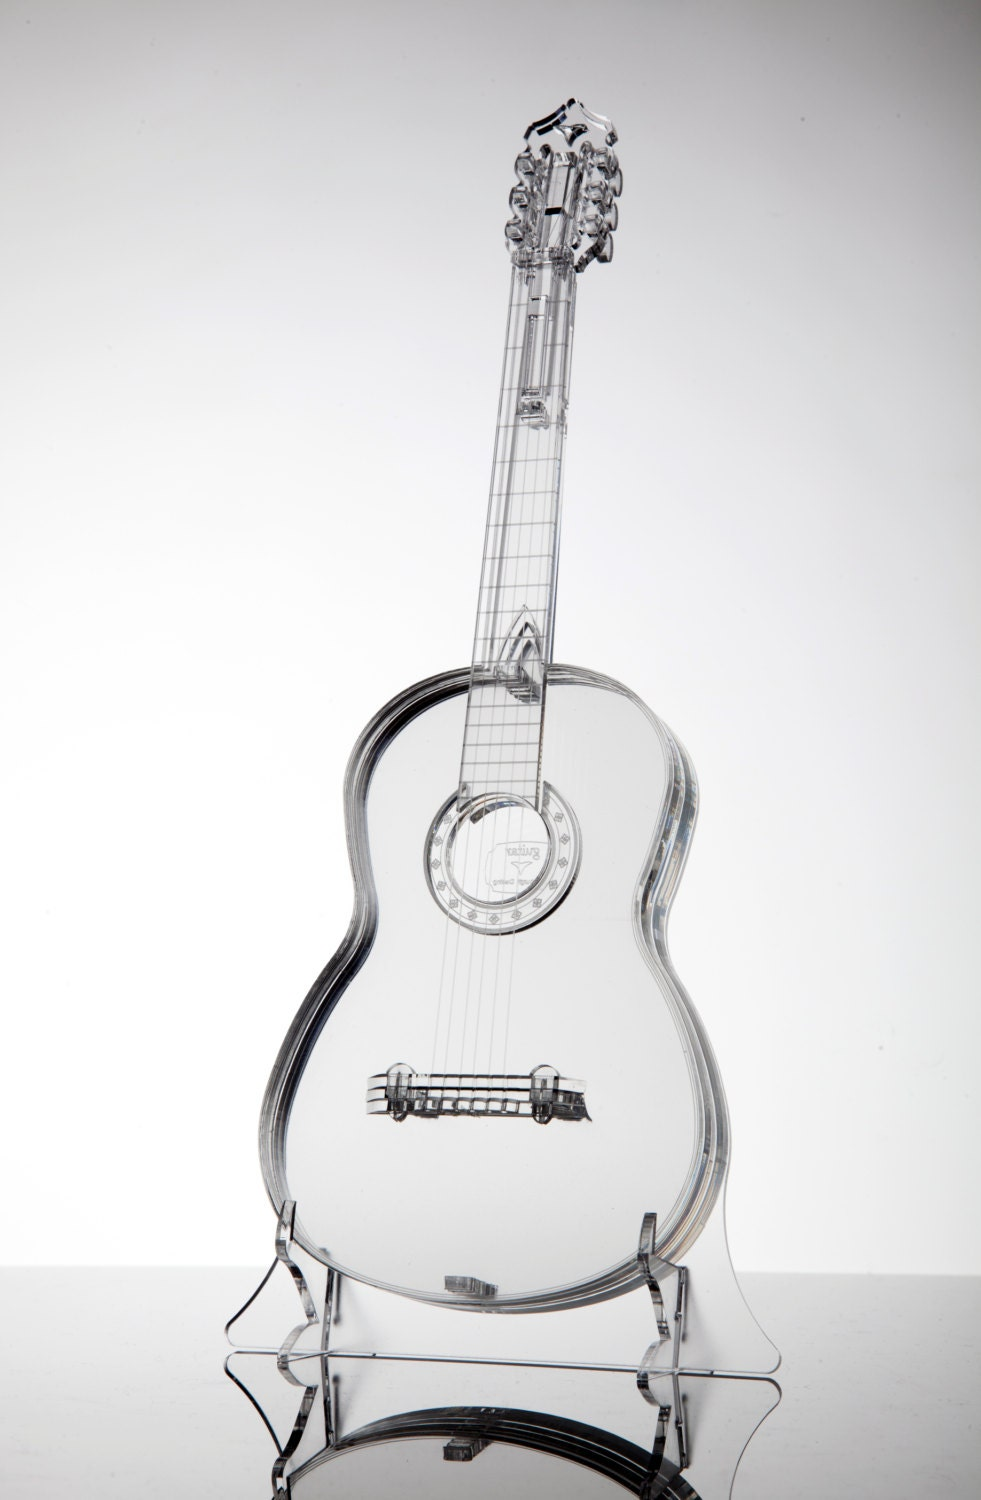 Elec Instrument Glass : Acrylic glass model guitar unique gift for musician music